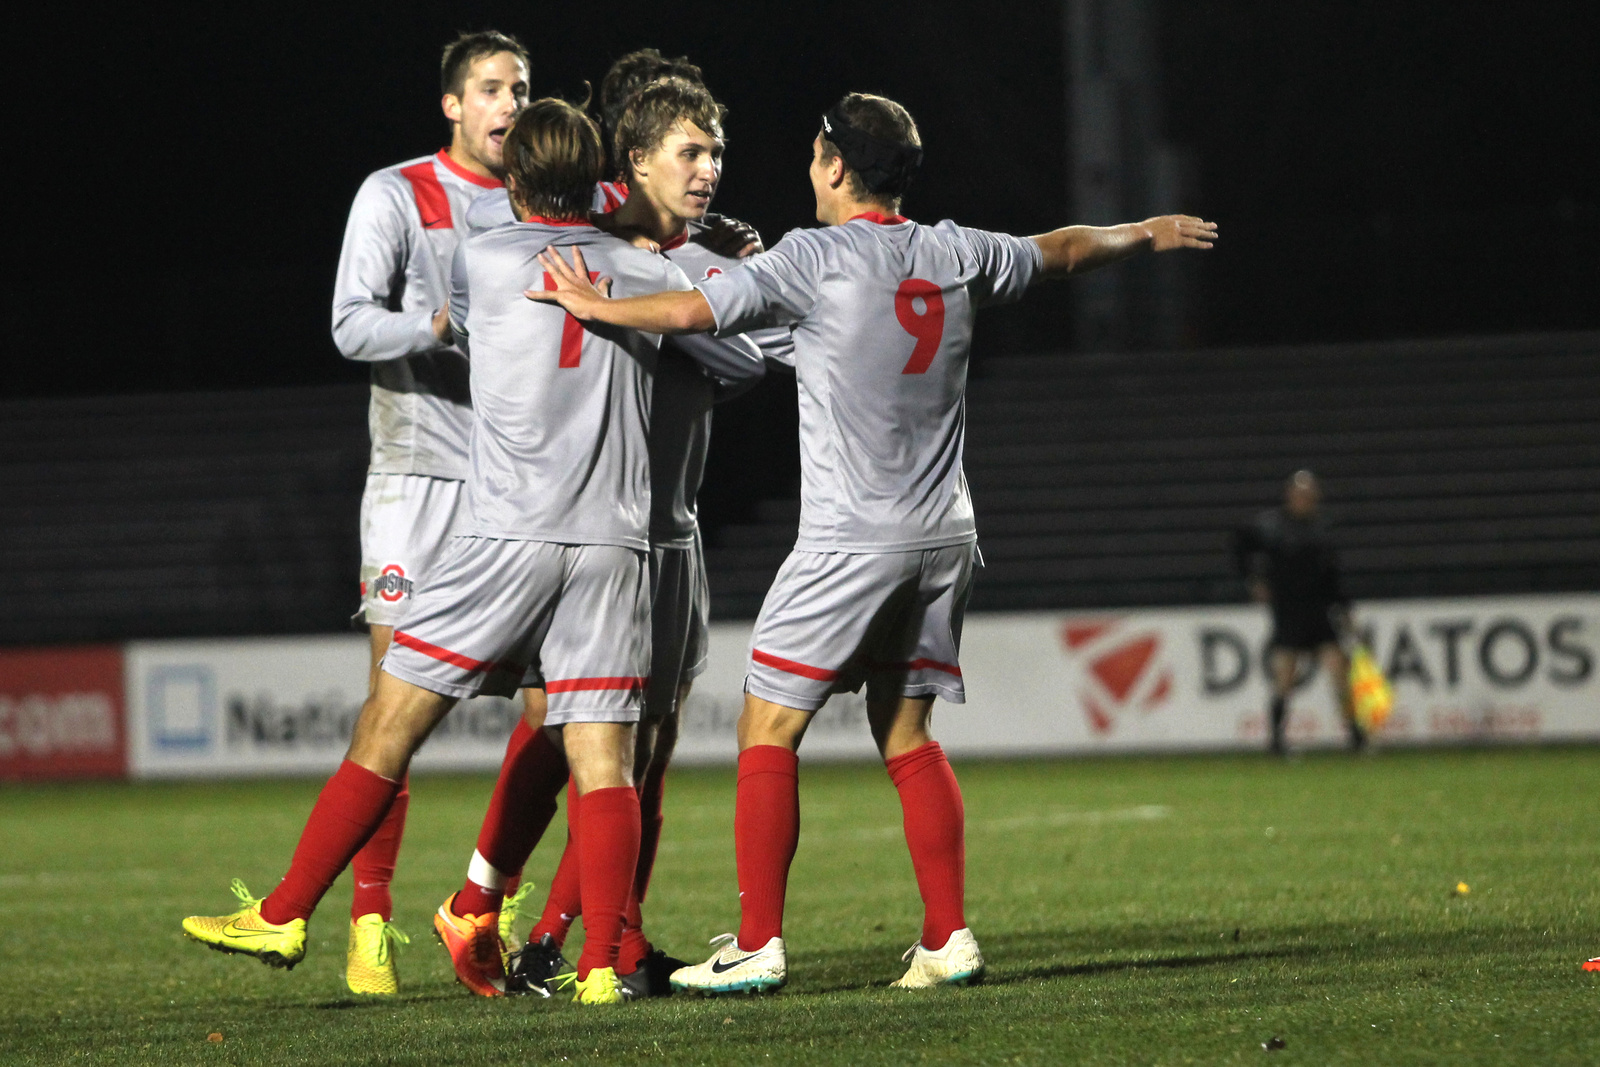 Members of the OSU men's soccer team celebrate during a 4-1 win against Rutgers on Oct. 25, 2014, at Jesse Owens Memorial Stadium.  Credit: Lantern File Photo